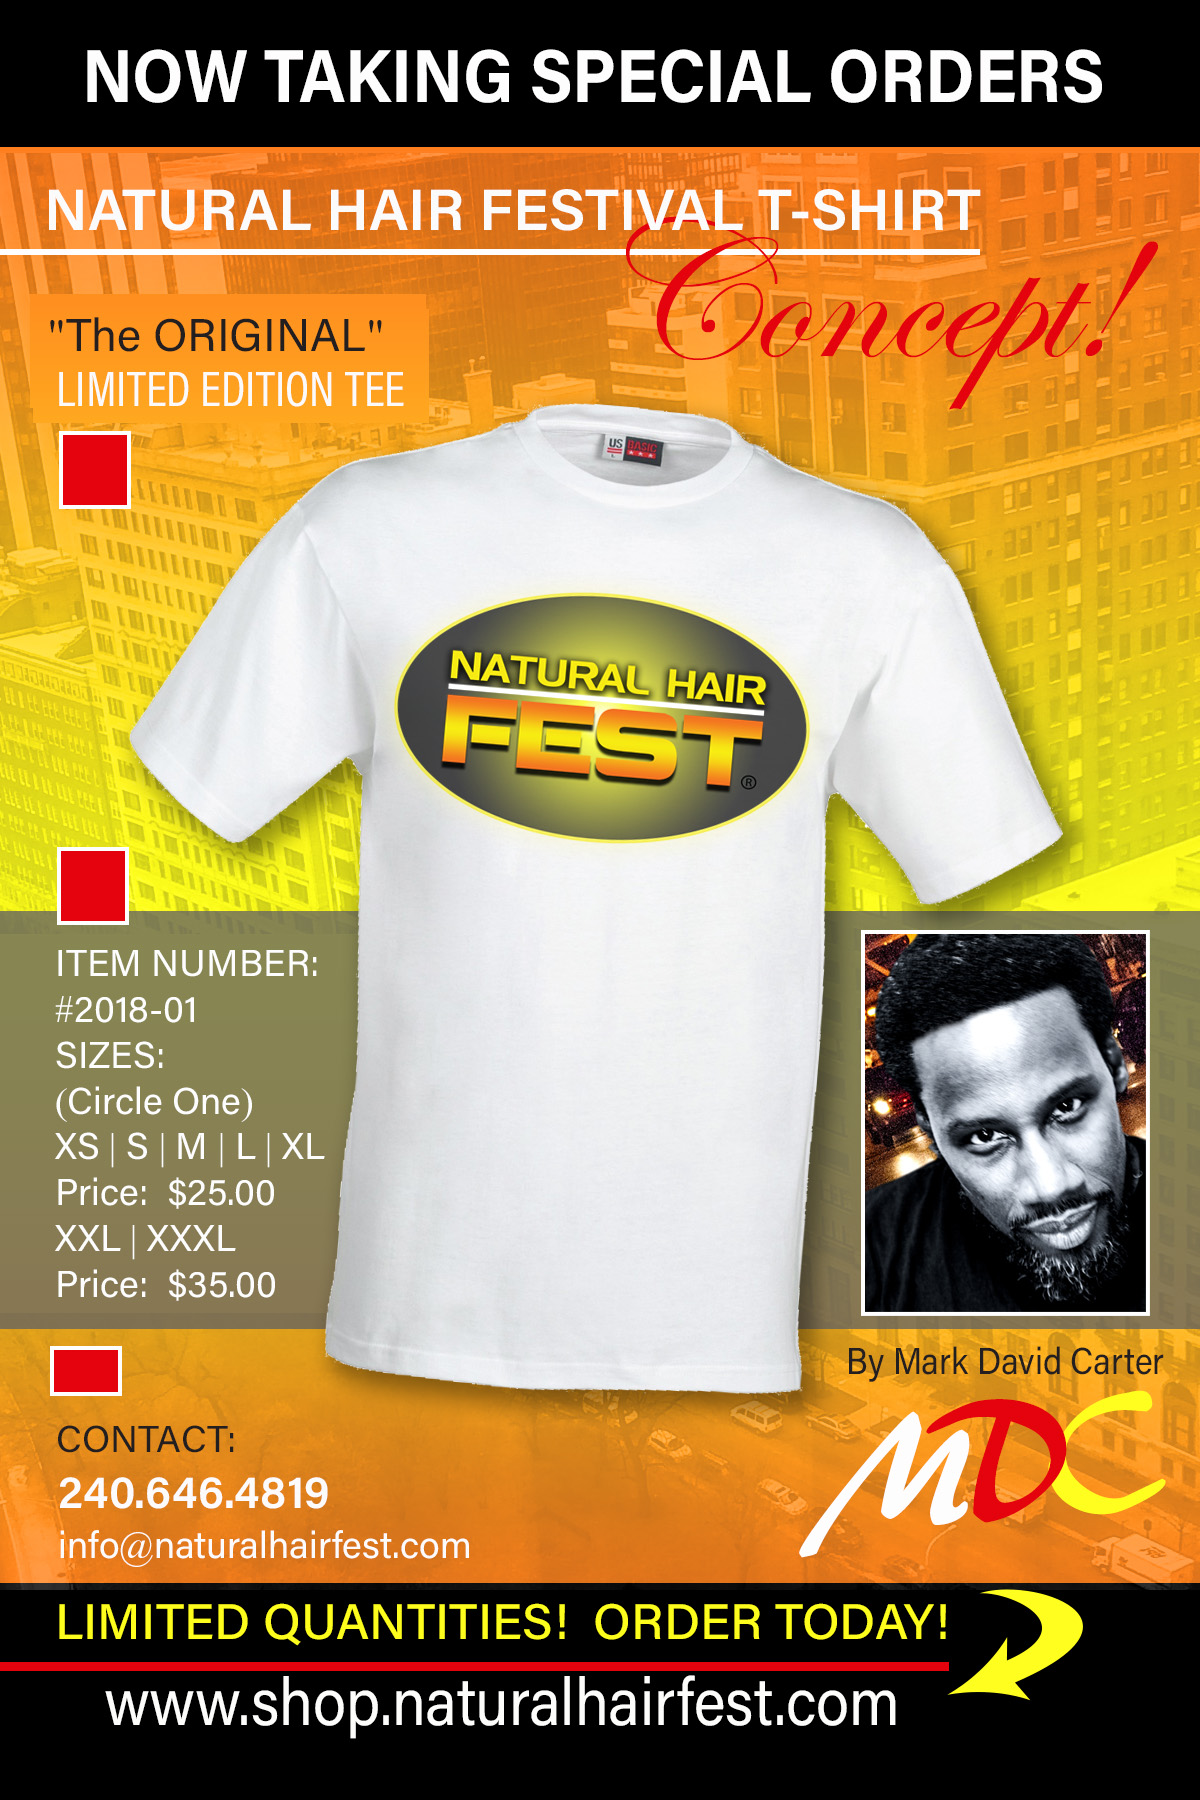 NATURAL HAIR FEST LIMITED EDITION TEES